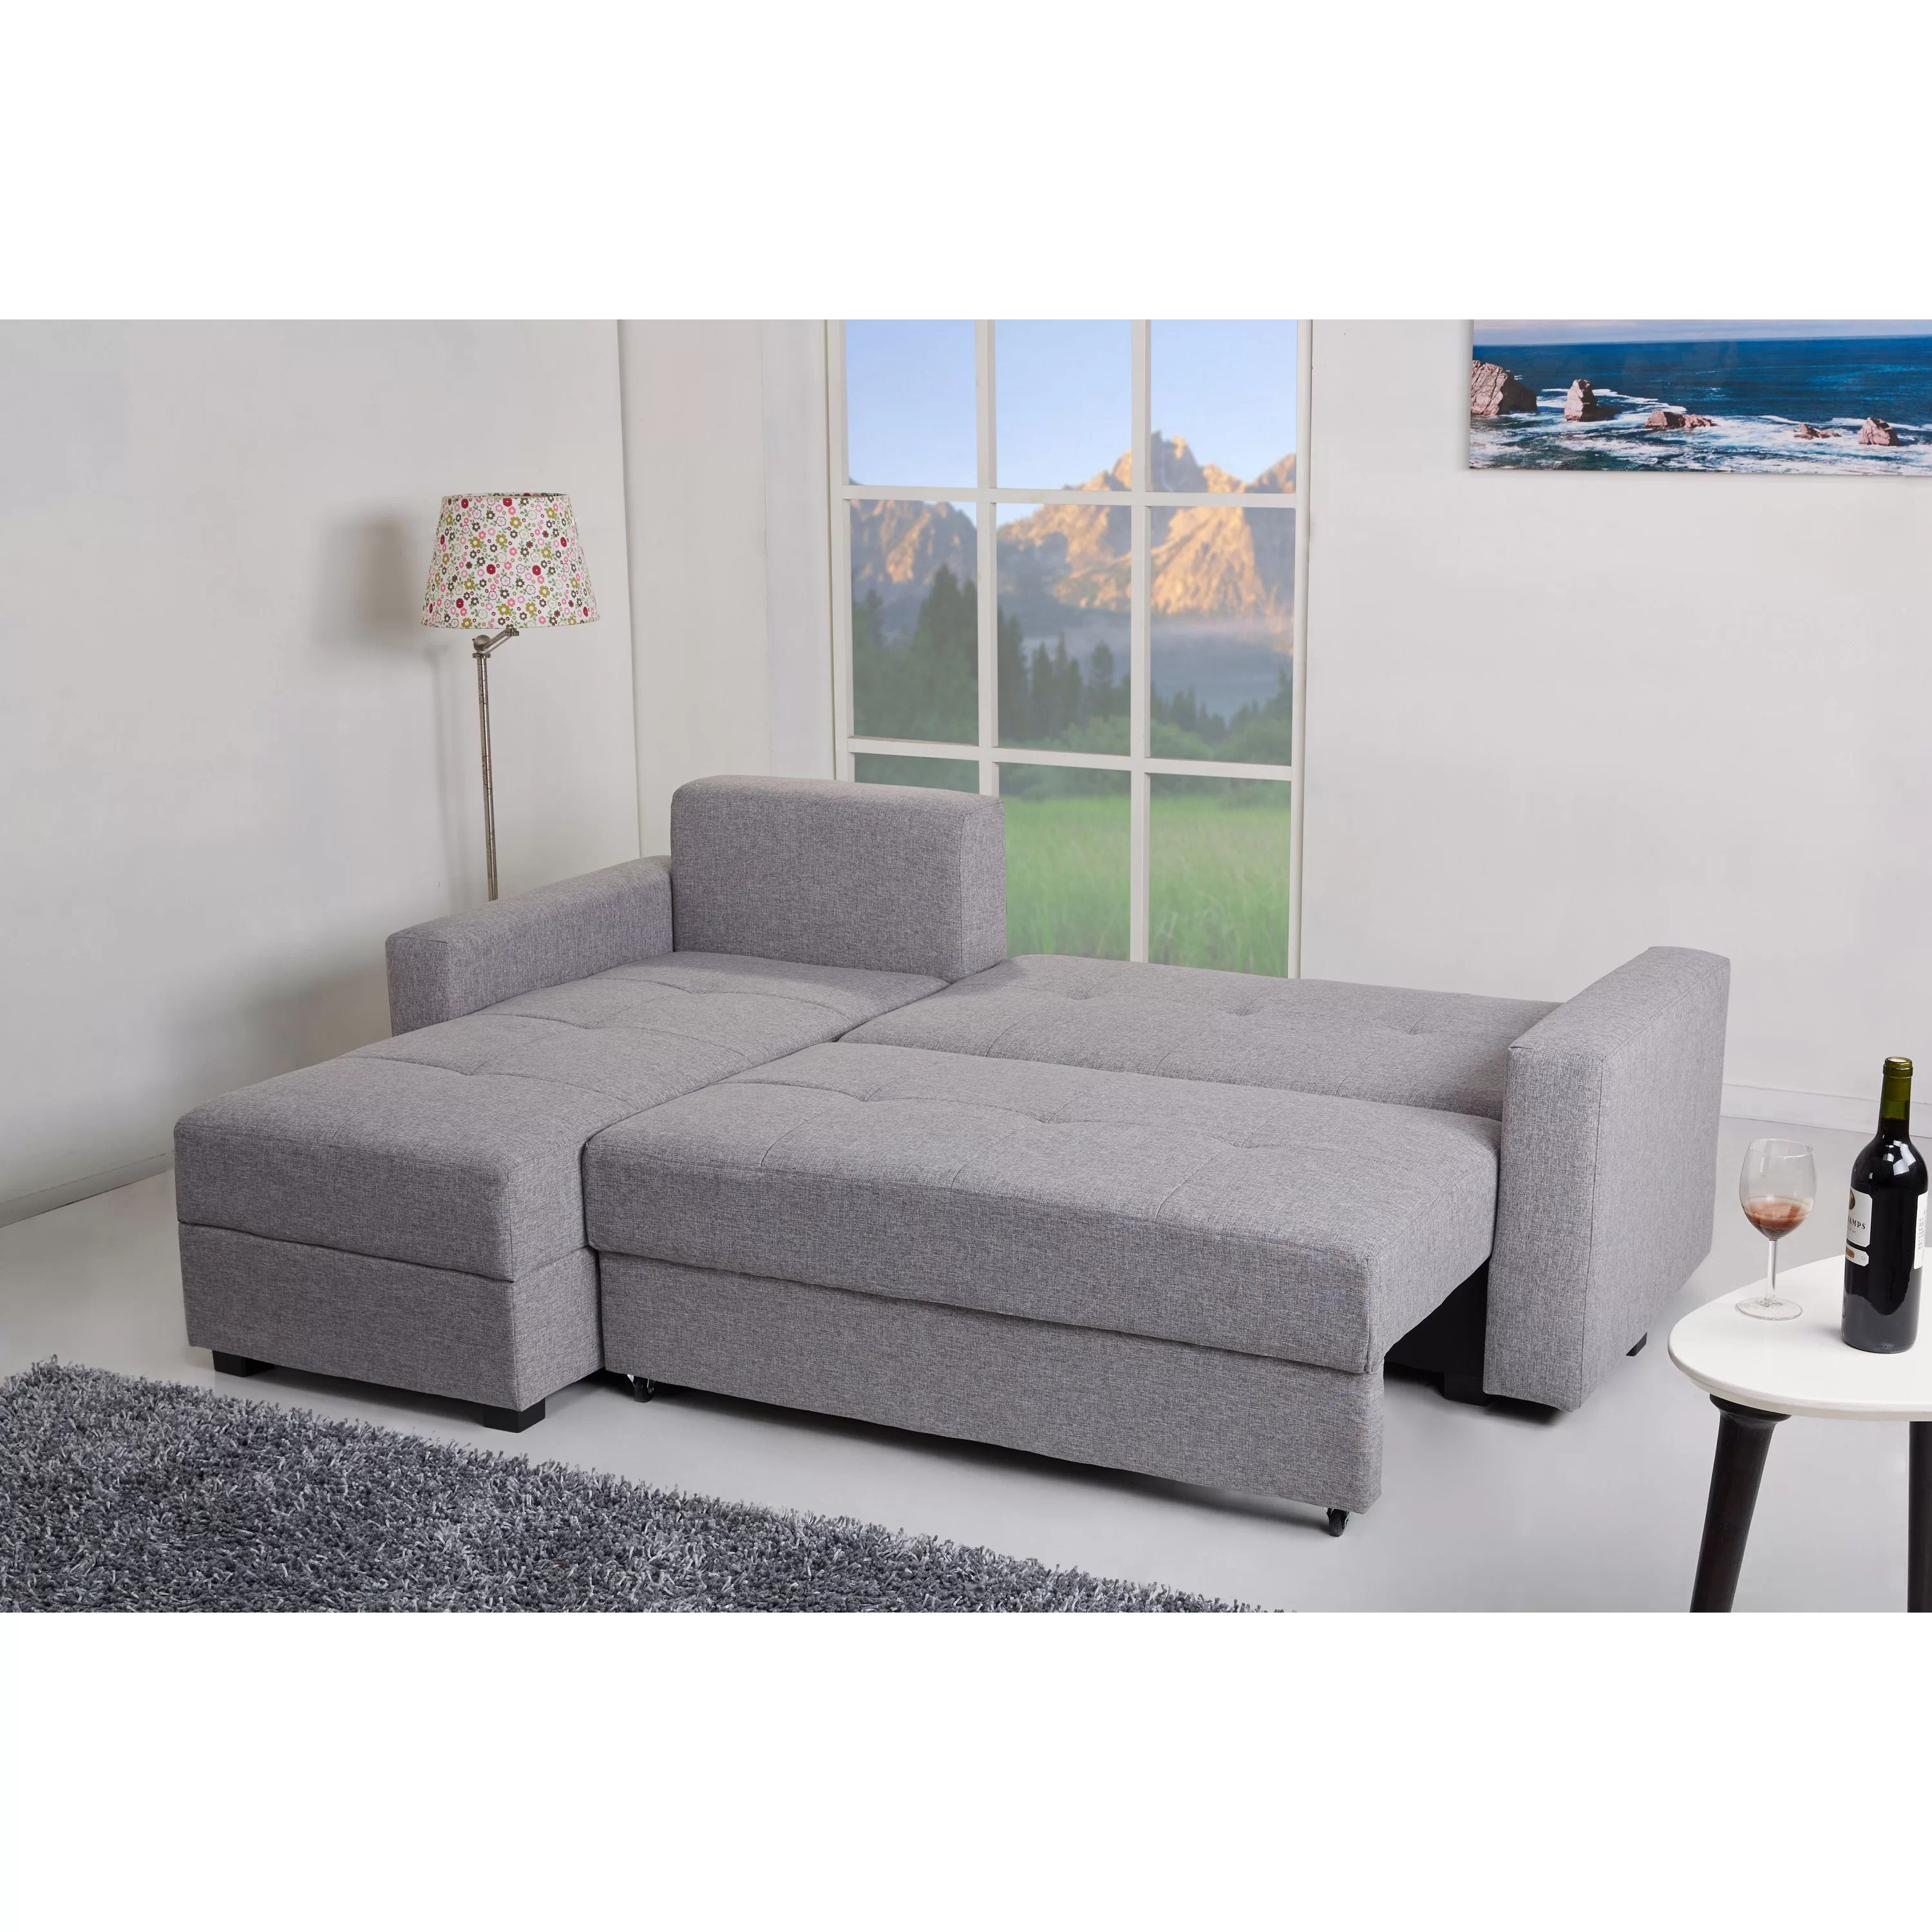 aspen convertible sectional storage sofa bed cinema manhattan faux leather gold sparrow reversible chaise and reviews